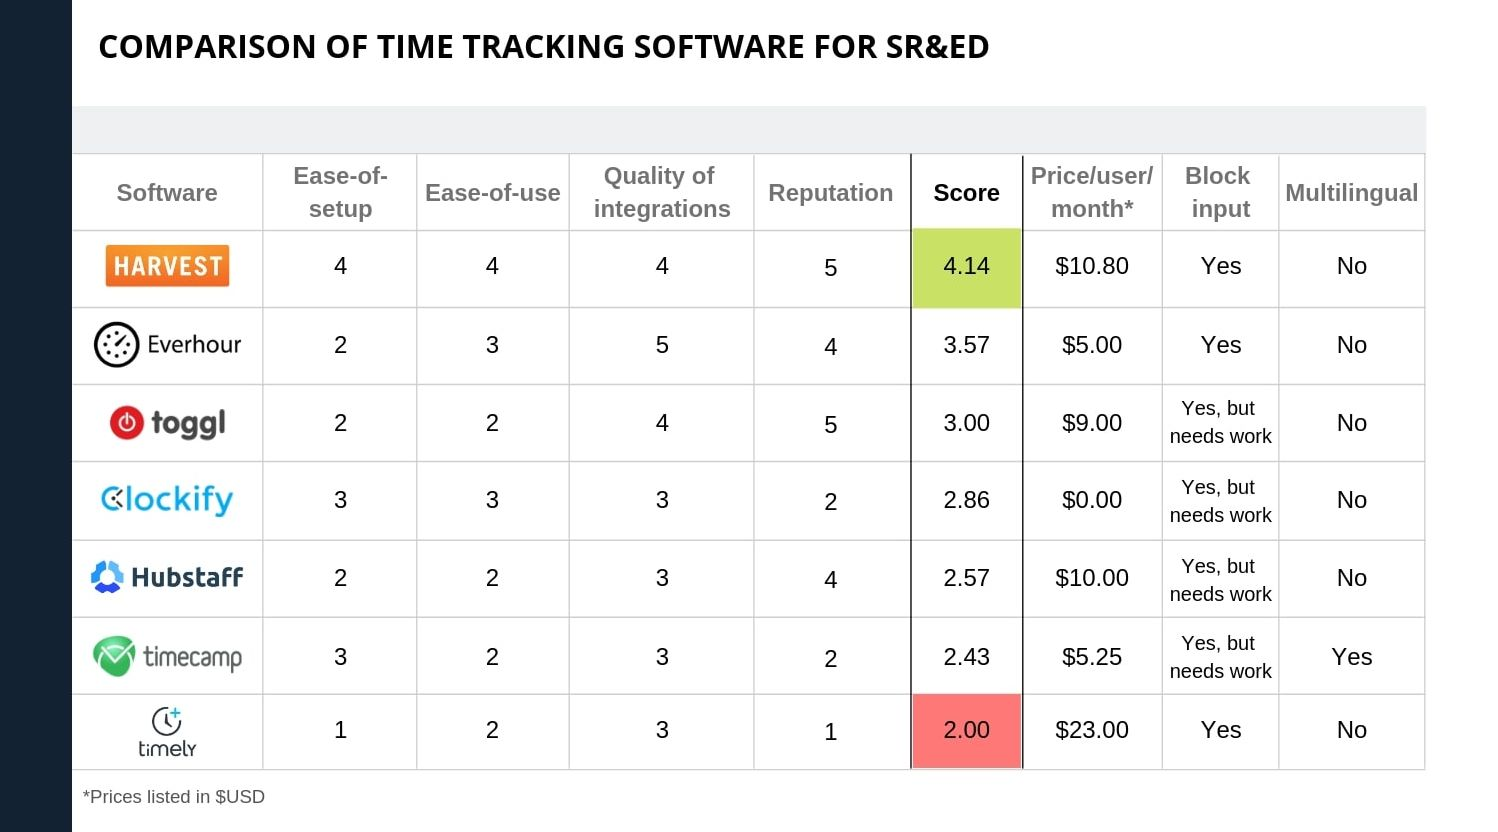 Comparison of Time Tracking Software for SR&ED